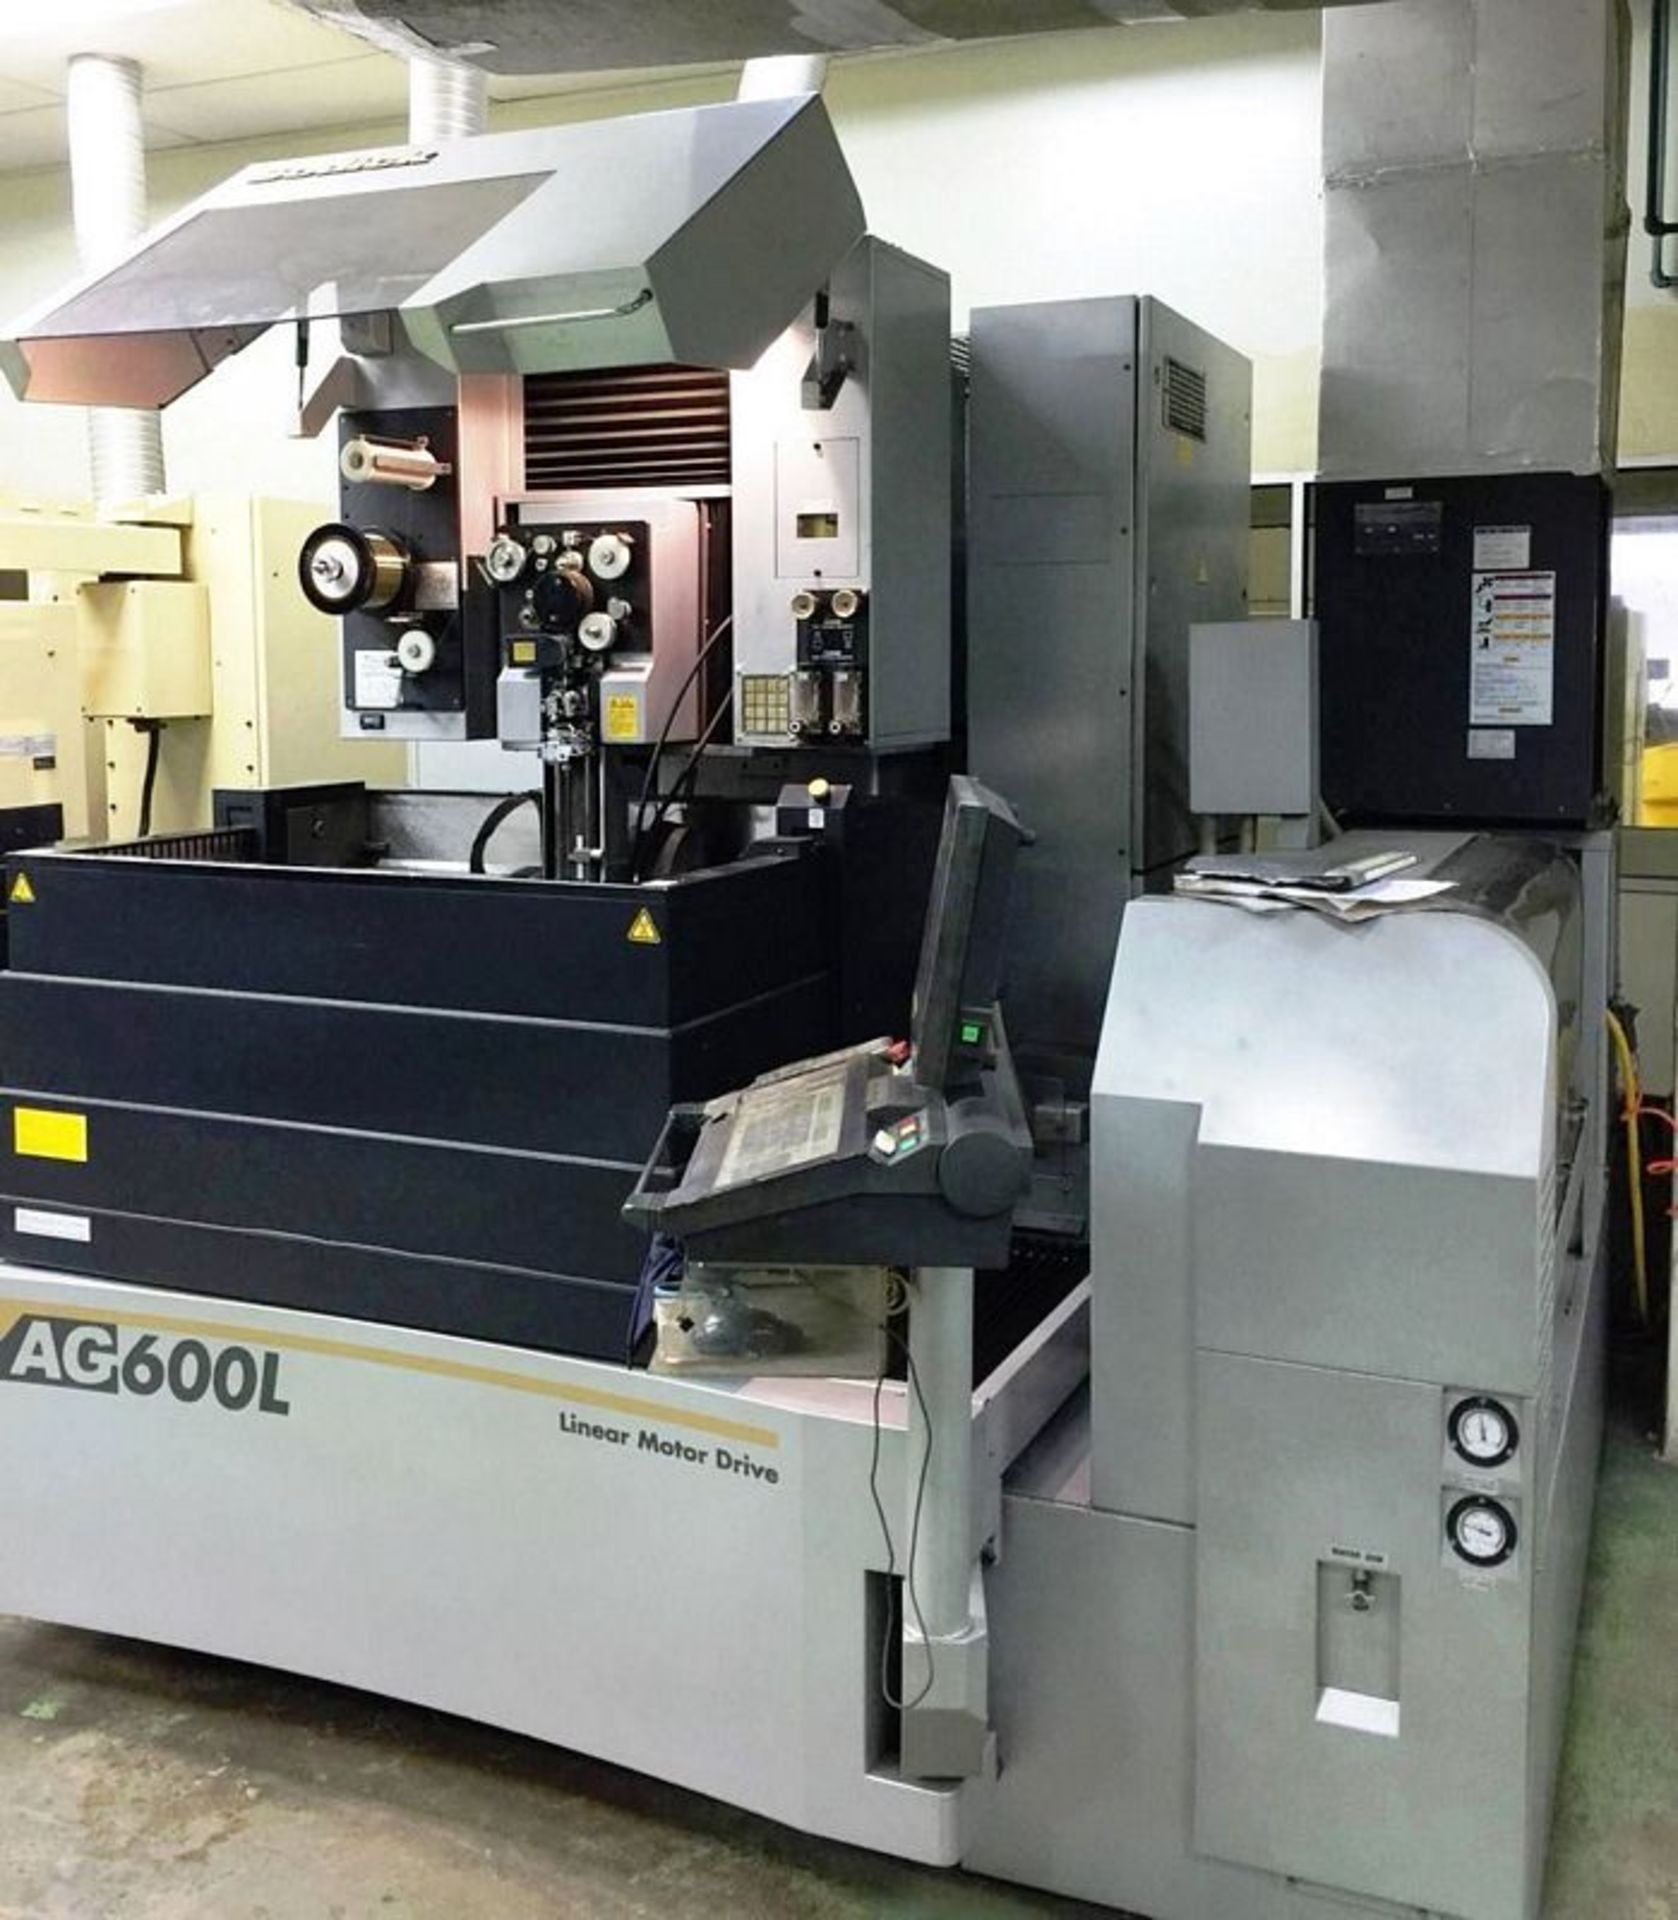 Lot 66 - Sodick AG600L CNC 5-Axis Wire Cut Electrical Discharge Machine, S/N 363, New 2011